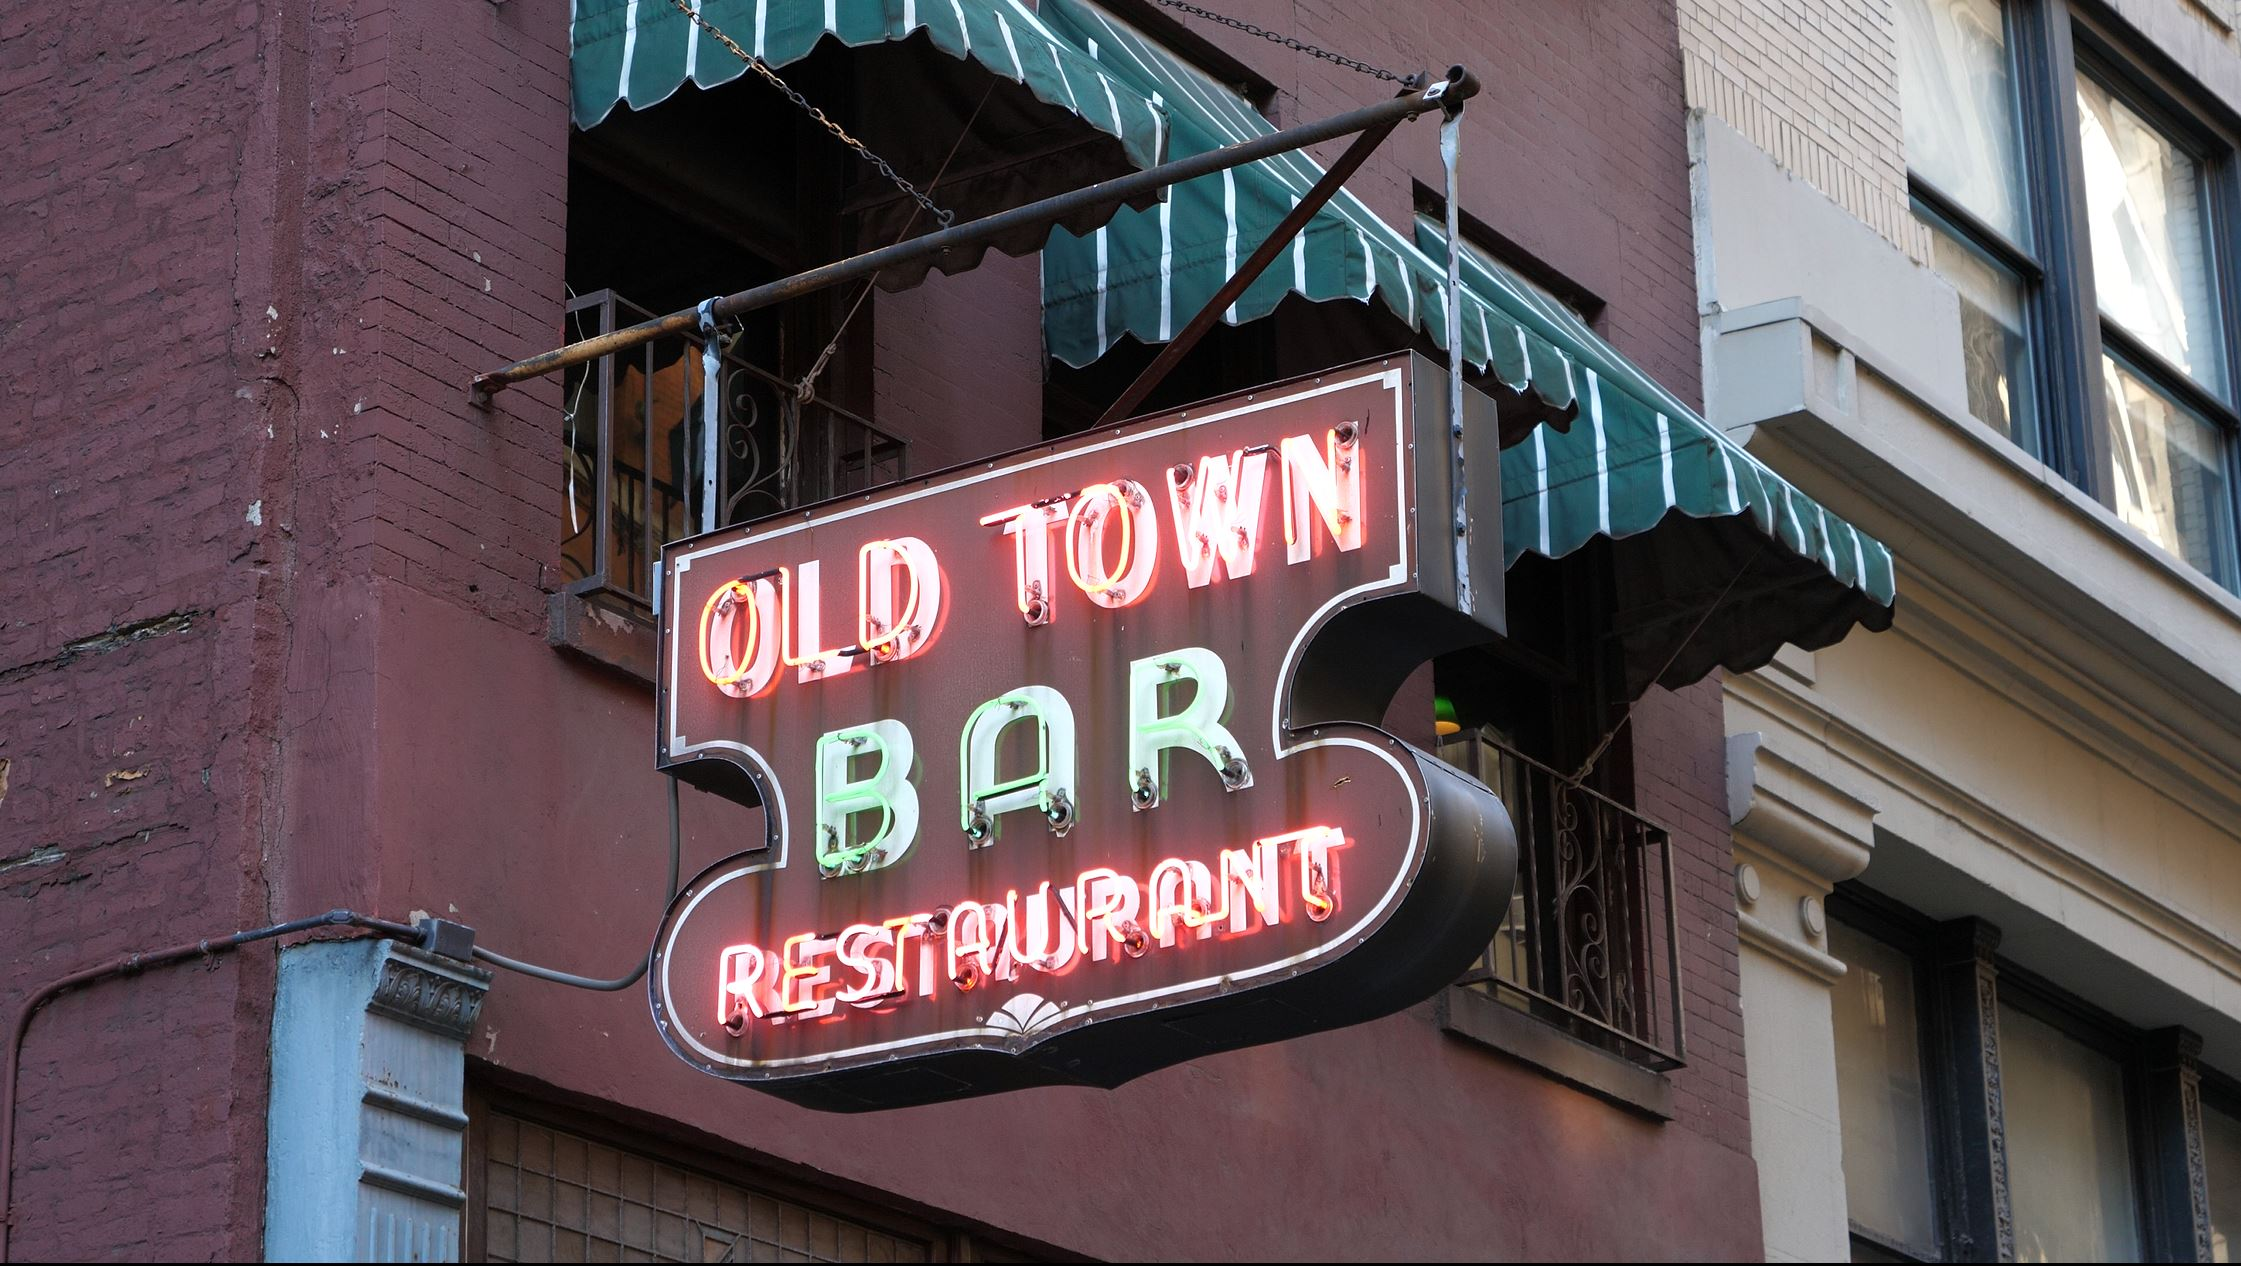 NYC Film Locations Guide to The Marvelous Mrs. Maisel Old town bar